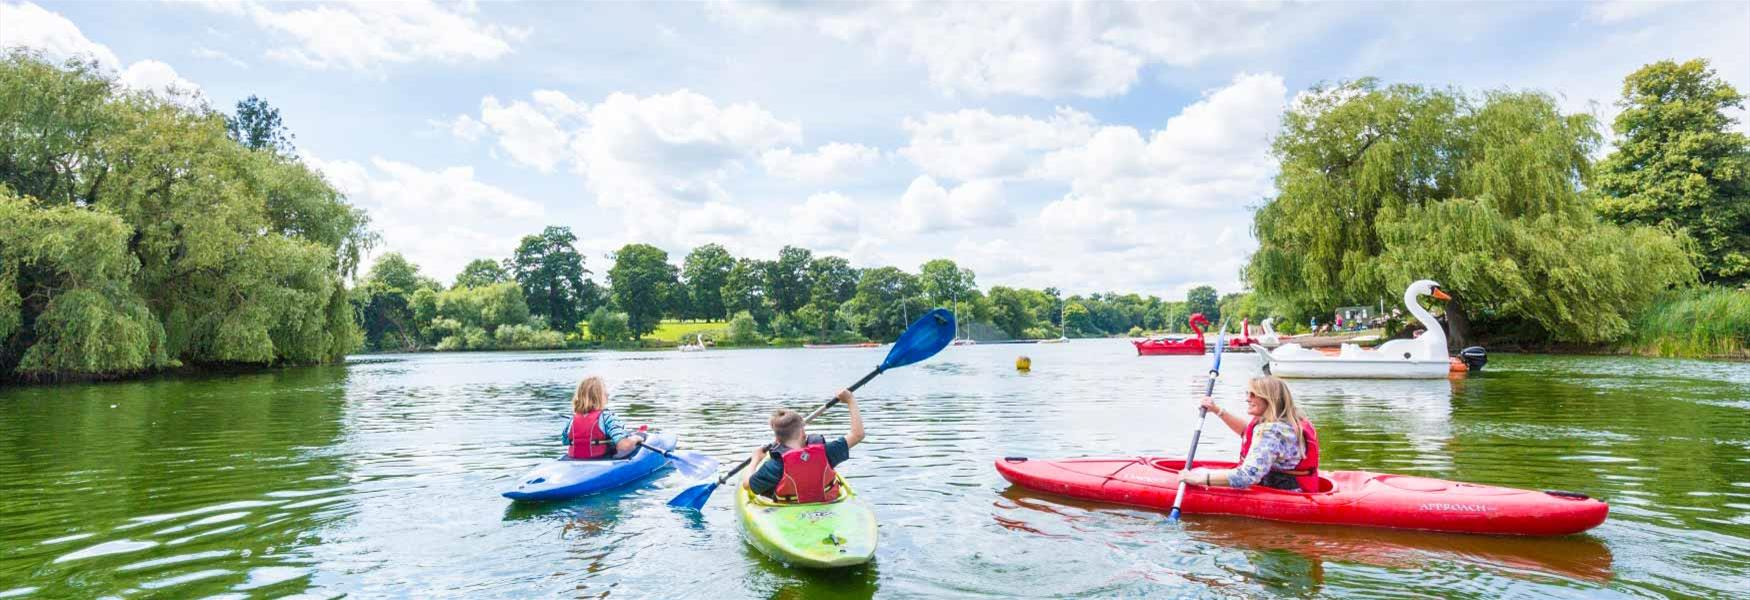 Family canoeing on lake at Mote Park